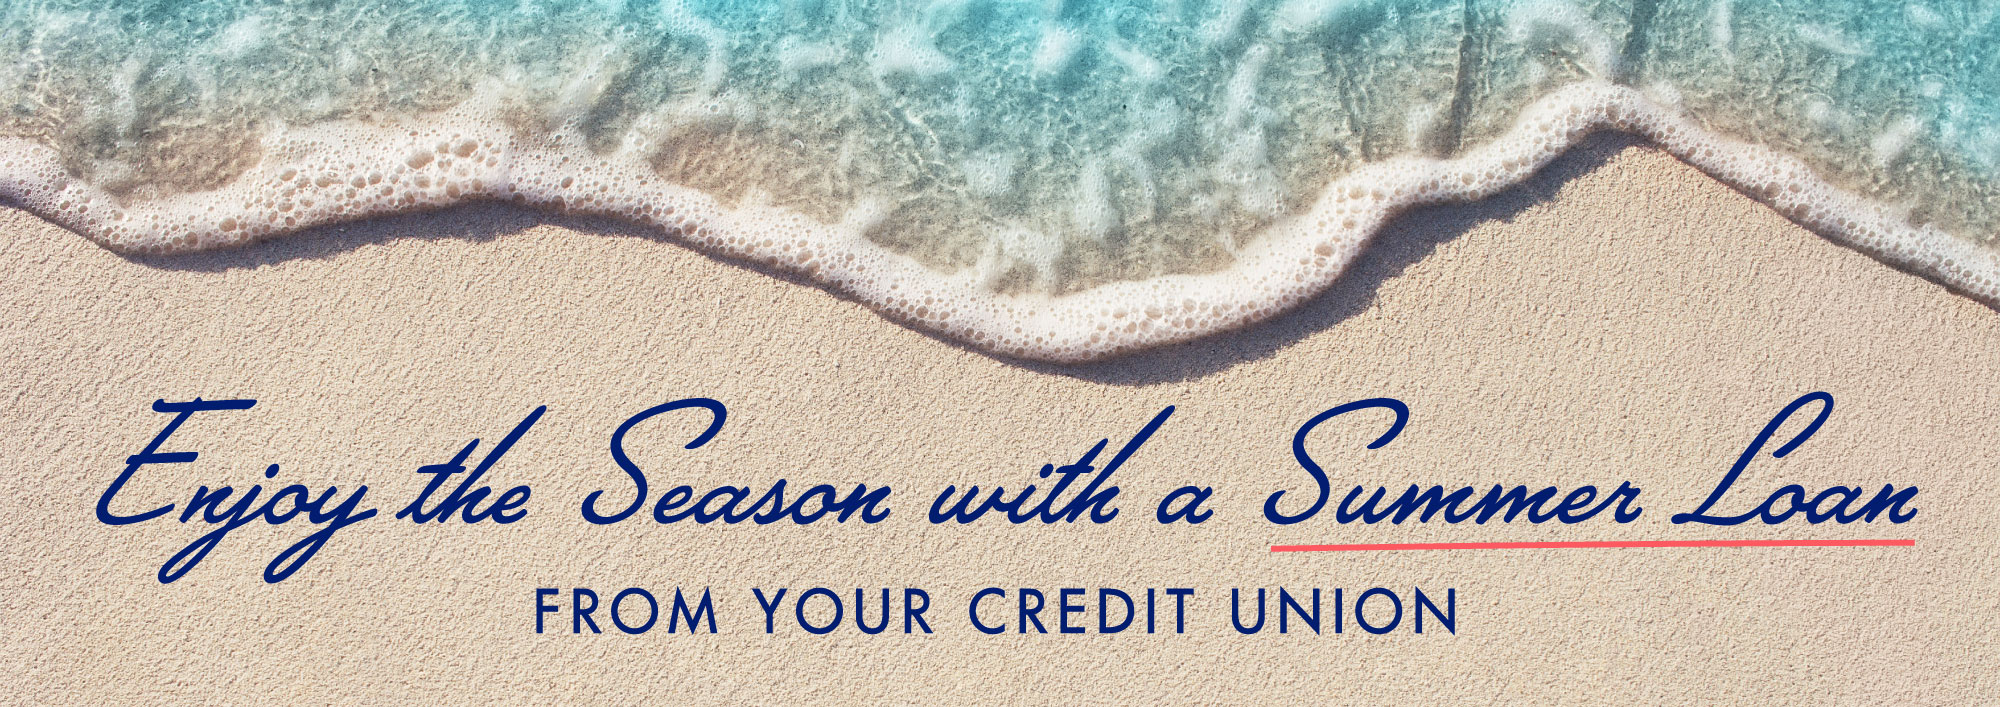 Enjoy the Season with a Summer Loan from Your Credit Union